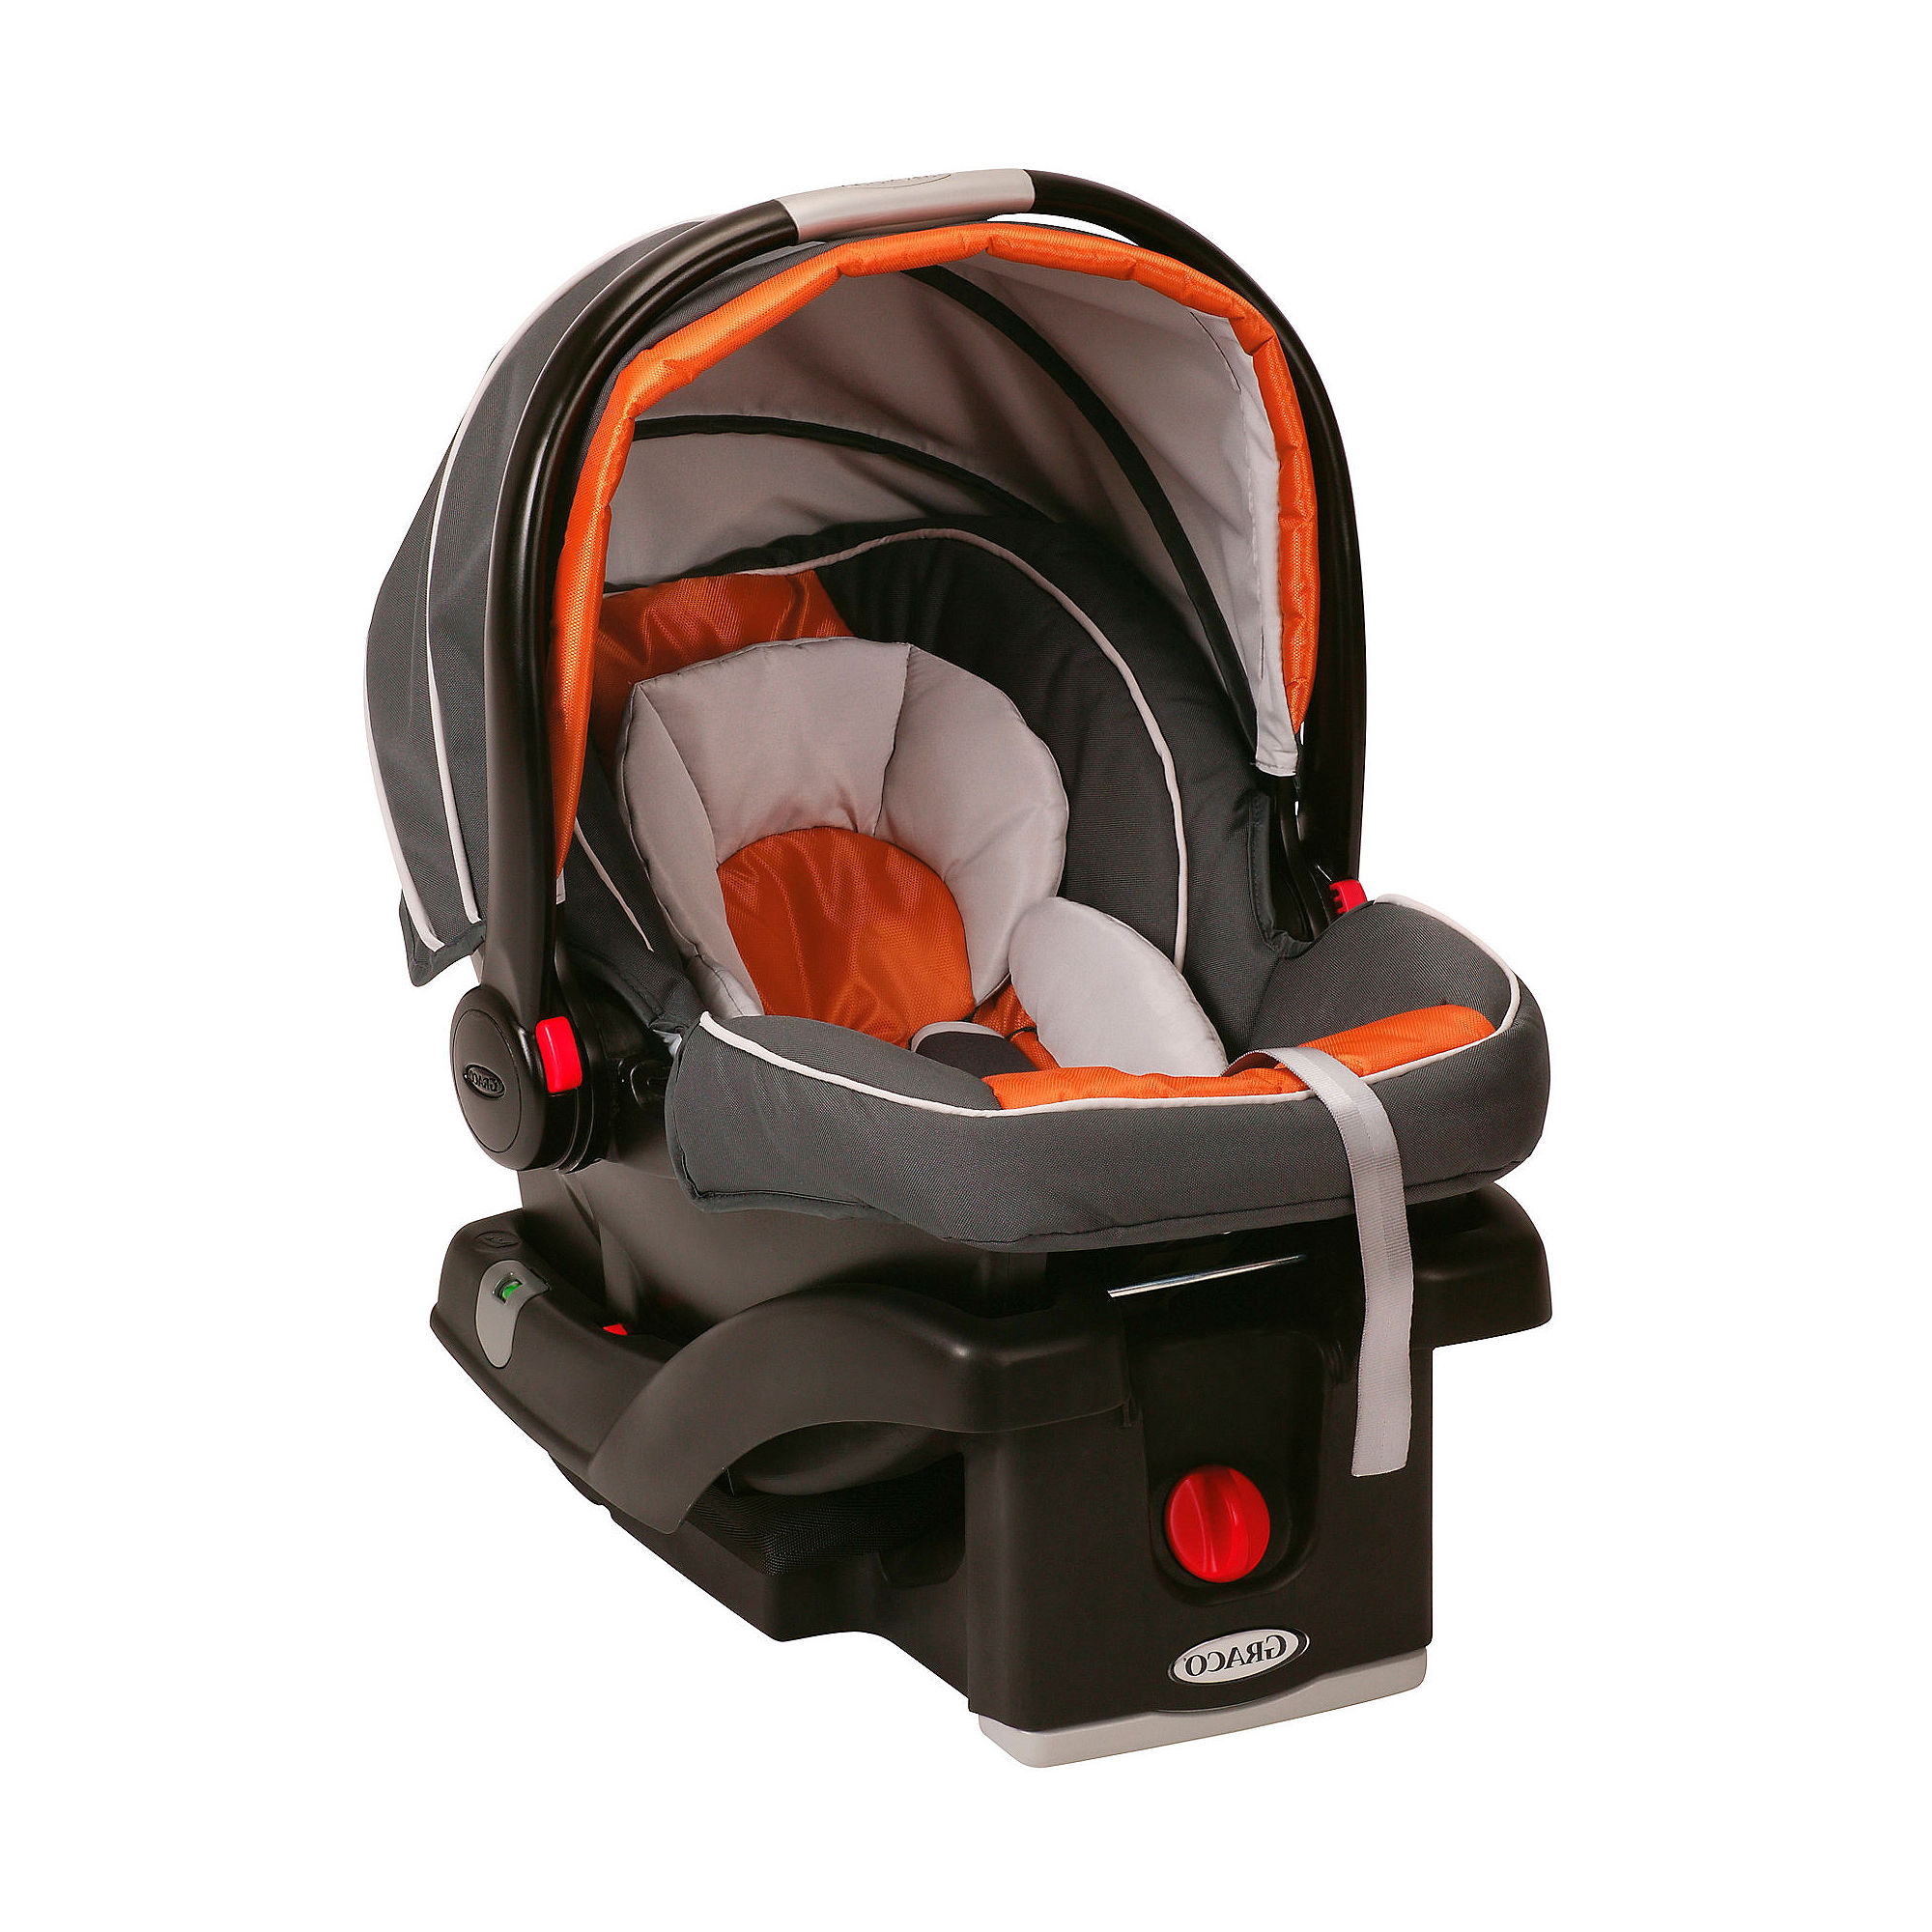 buy graco graco snugride click connect 35 lx infant car seat base now cheap car seat. Black Bedroom Furniture Sets. Home Design Ideas